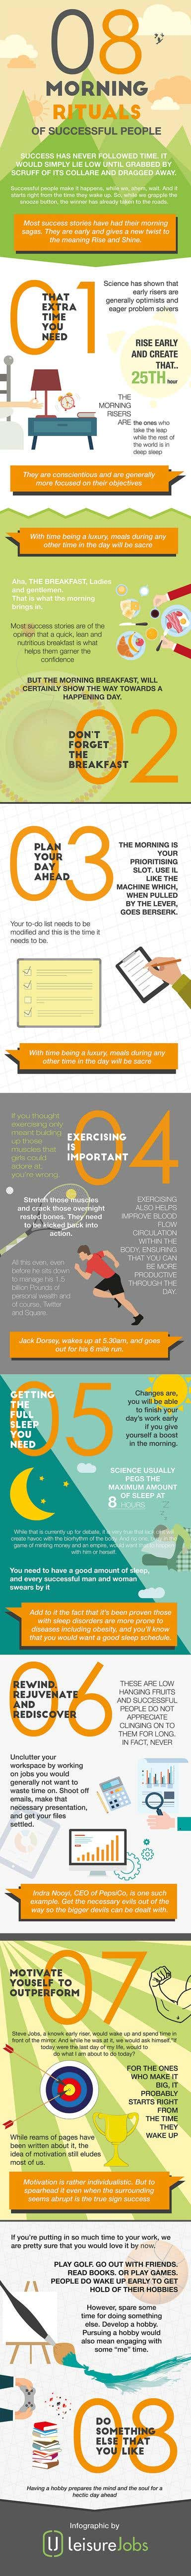 Infographic - 08 Morning rituals of successful people